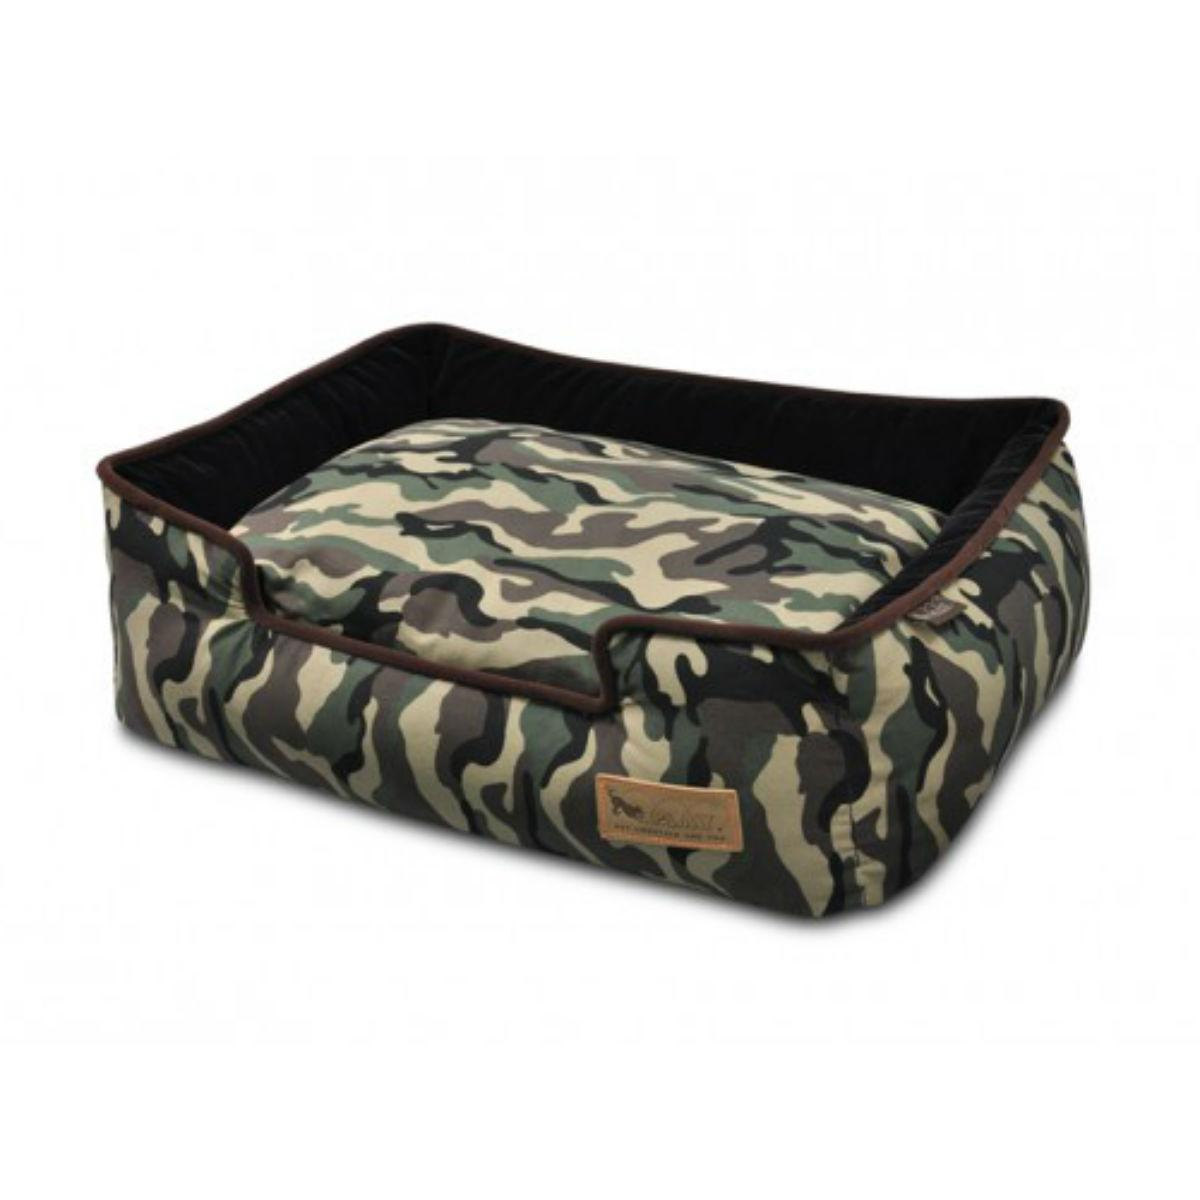 P.L.A.Y. Camouflage Lounge Dog Bed - Green